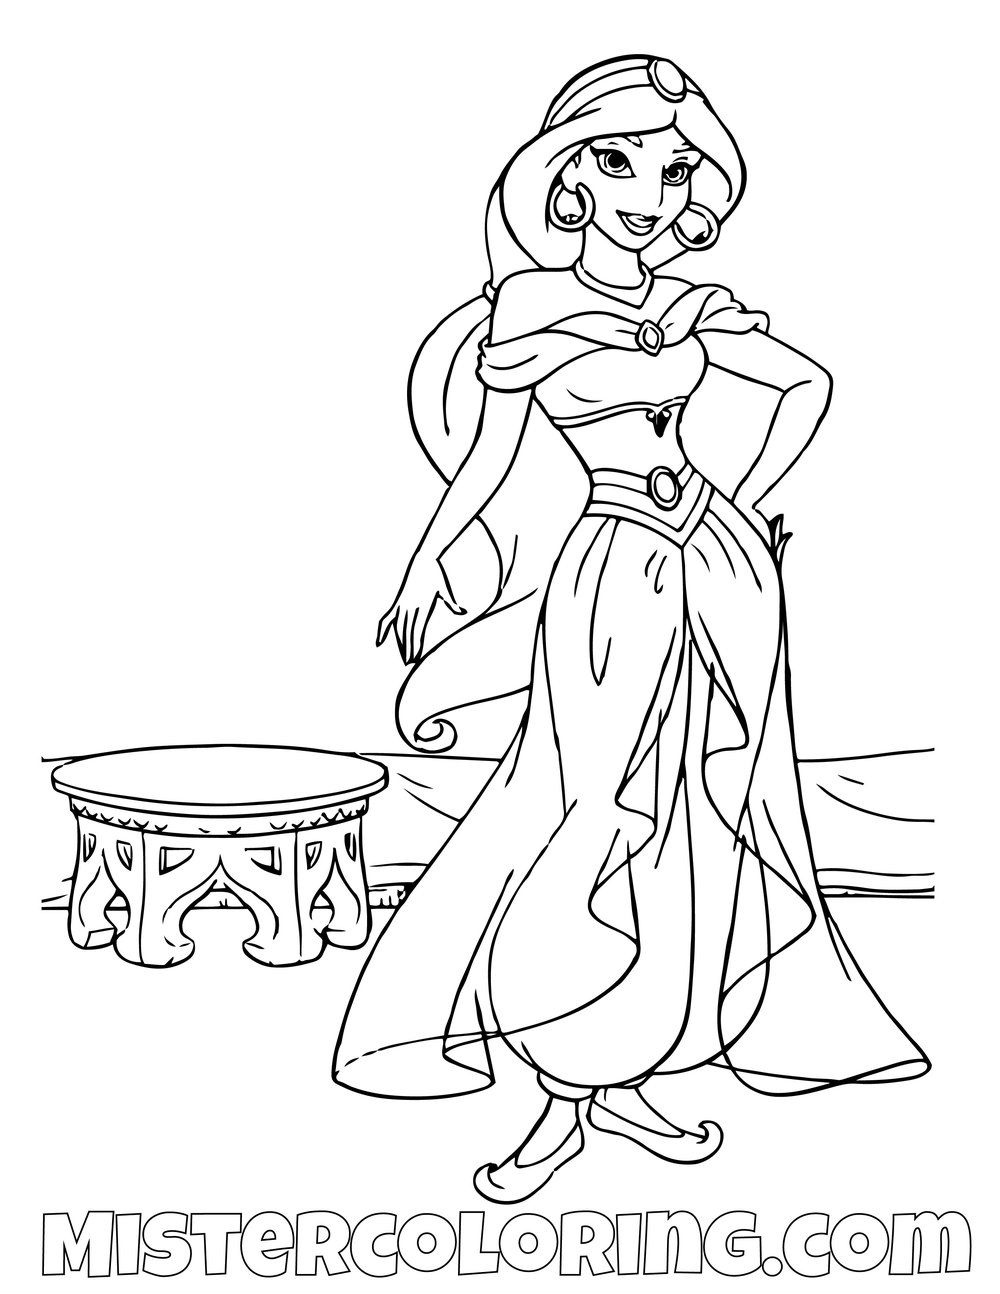 Princess Jasmine Posing Aladdin Coloring Page Disney Princess Coloring Pages Princess Coloring Pages Disney Coloring Pages